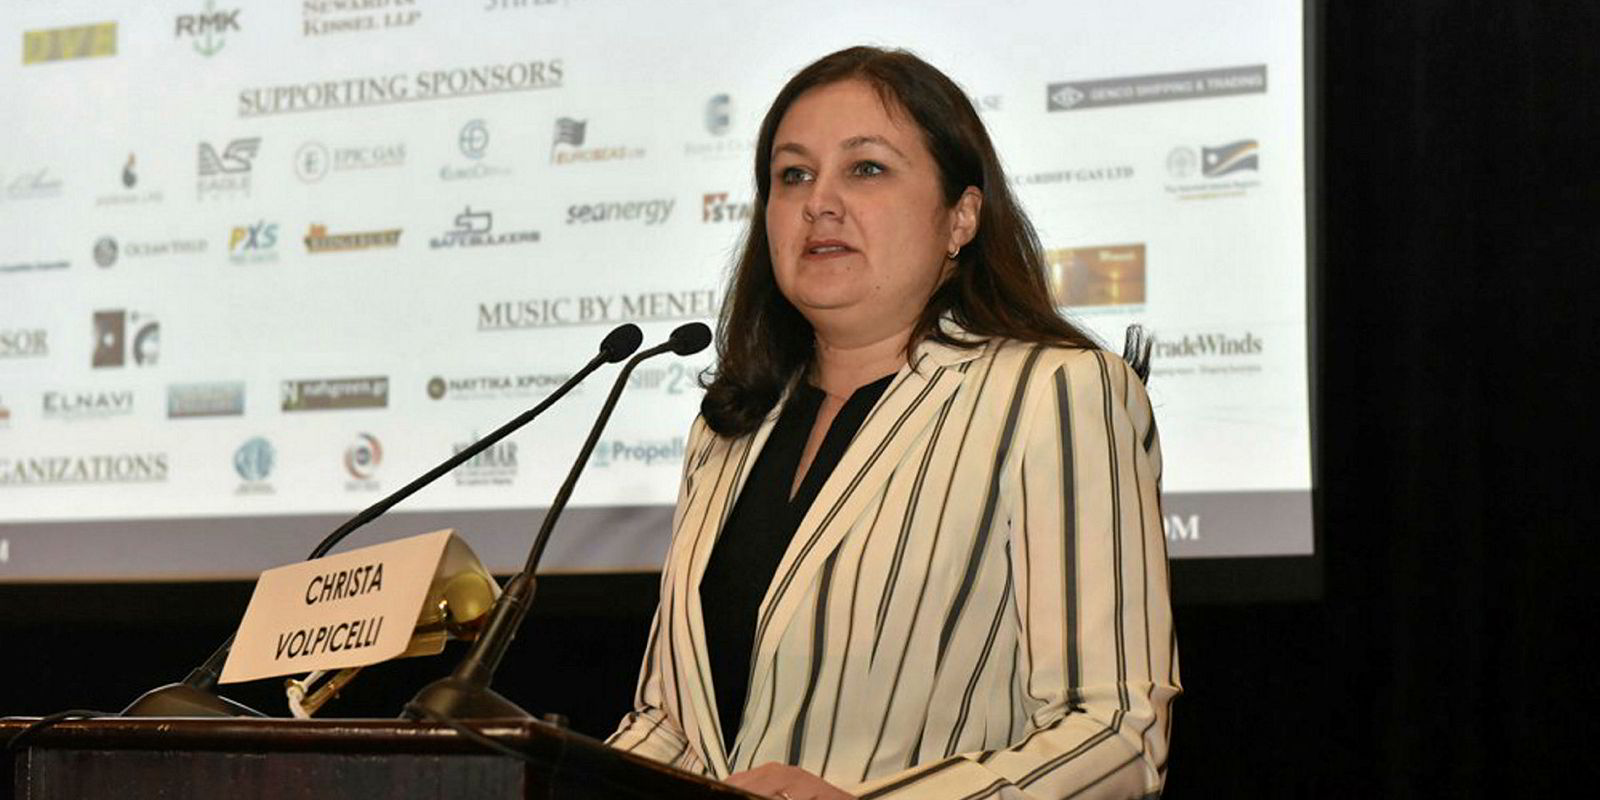 Fears and opportunities at New York forum | TradeWinds